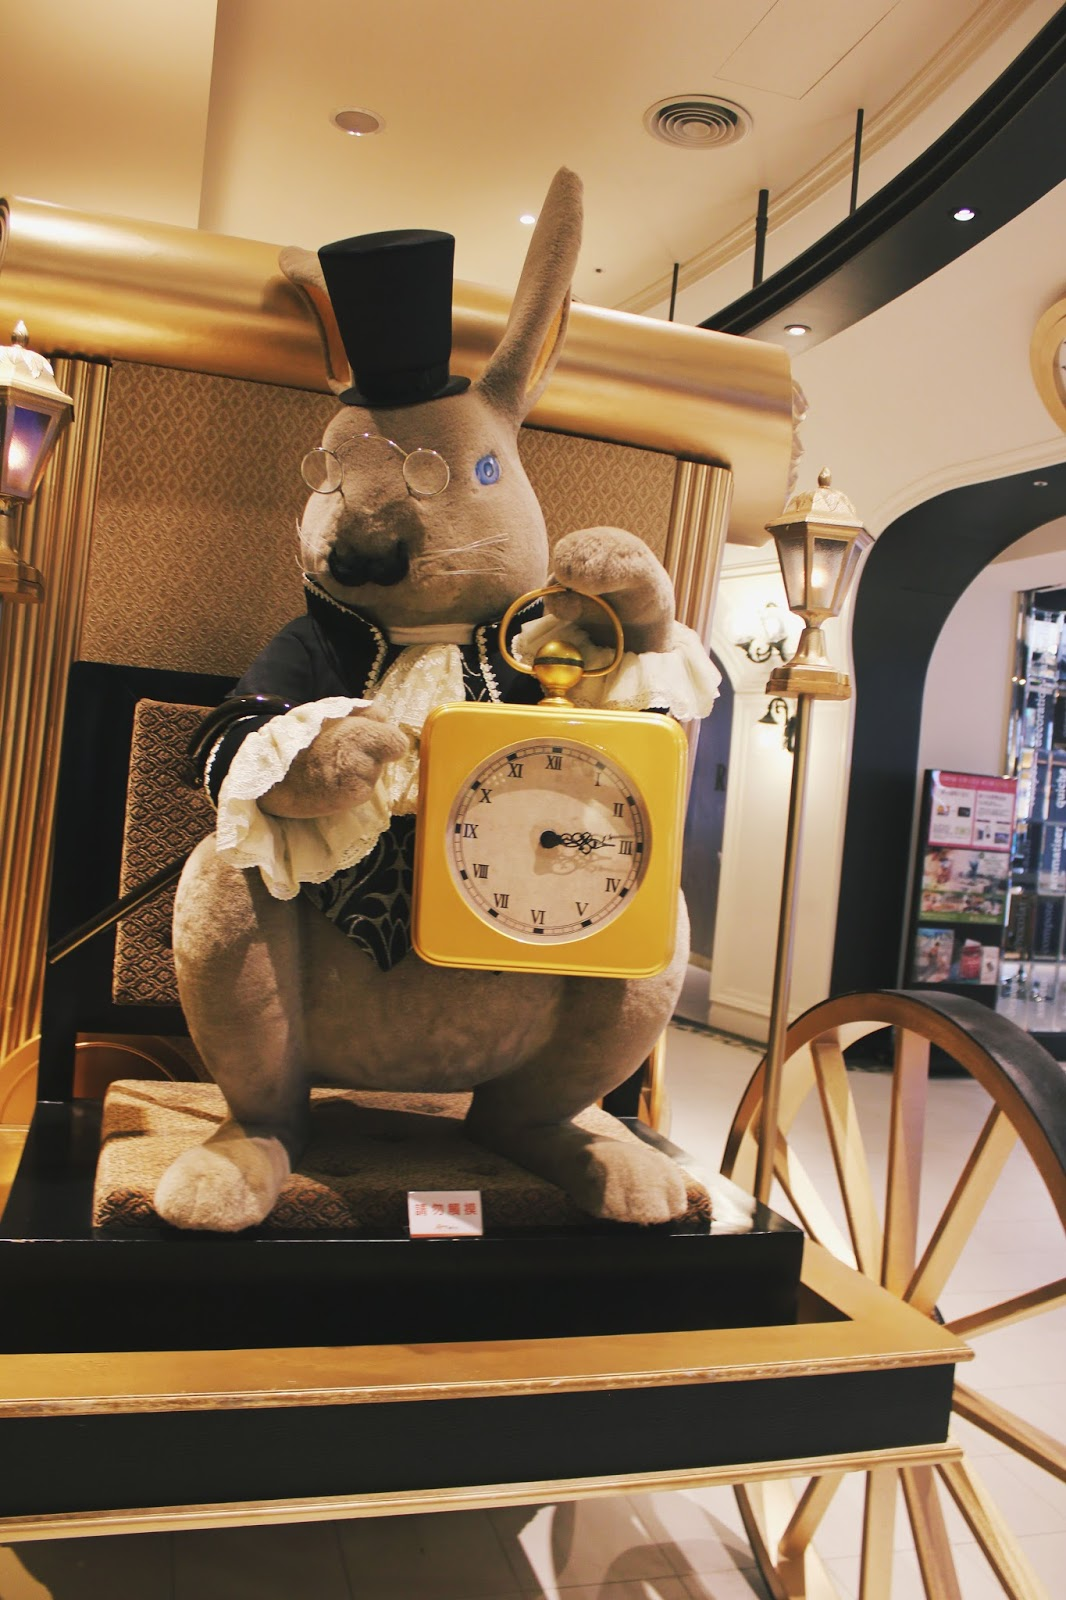 huge rabbit cute xinyi taipei taiwan att4fun alice disney